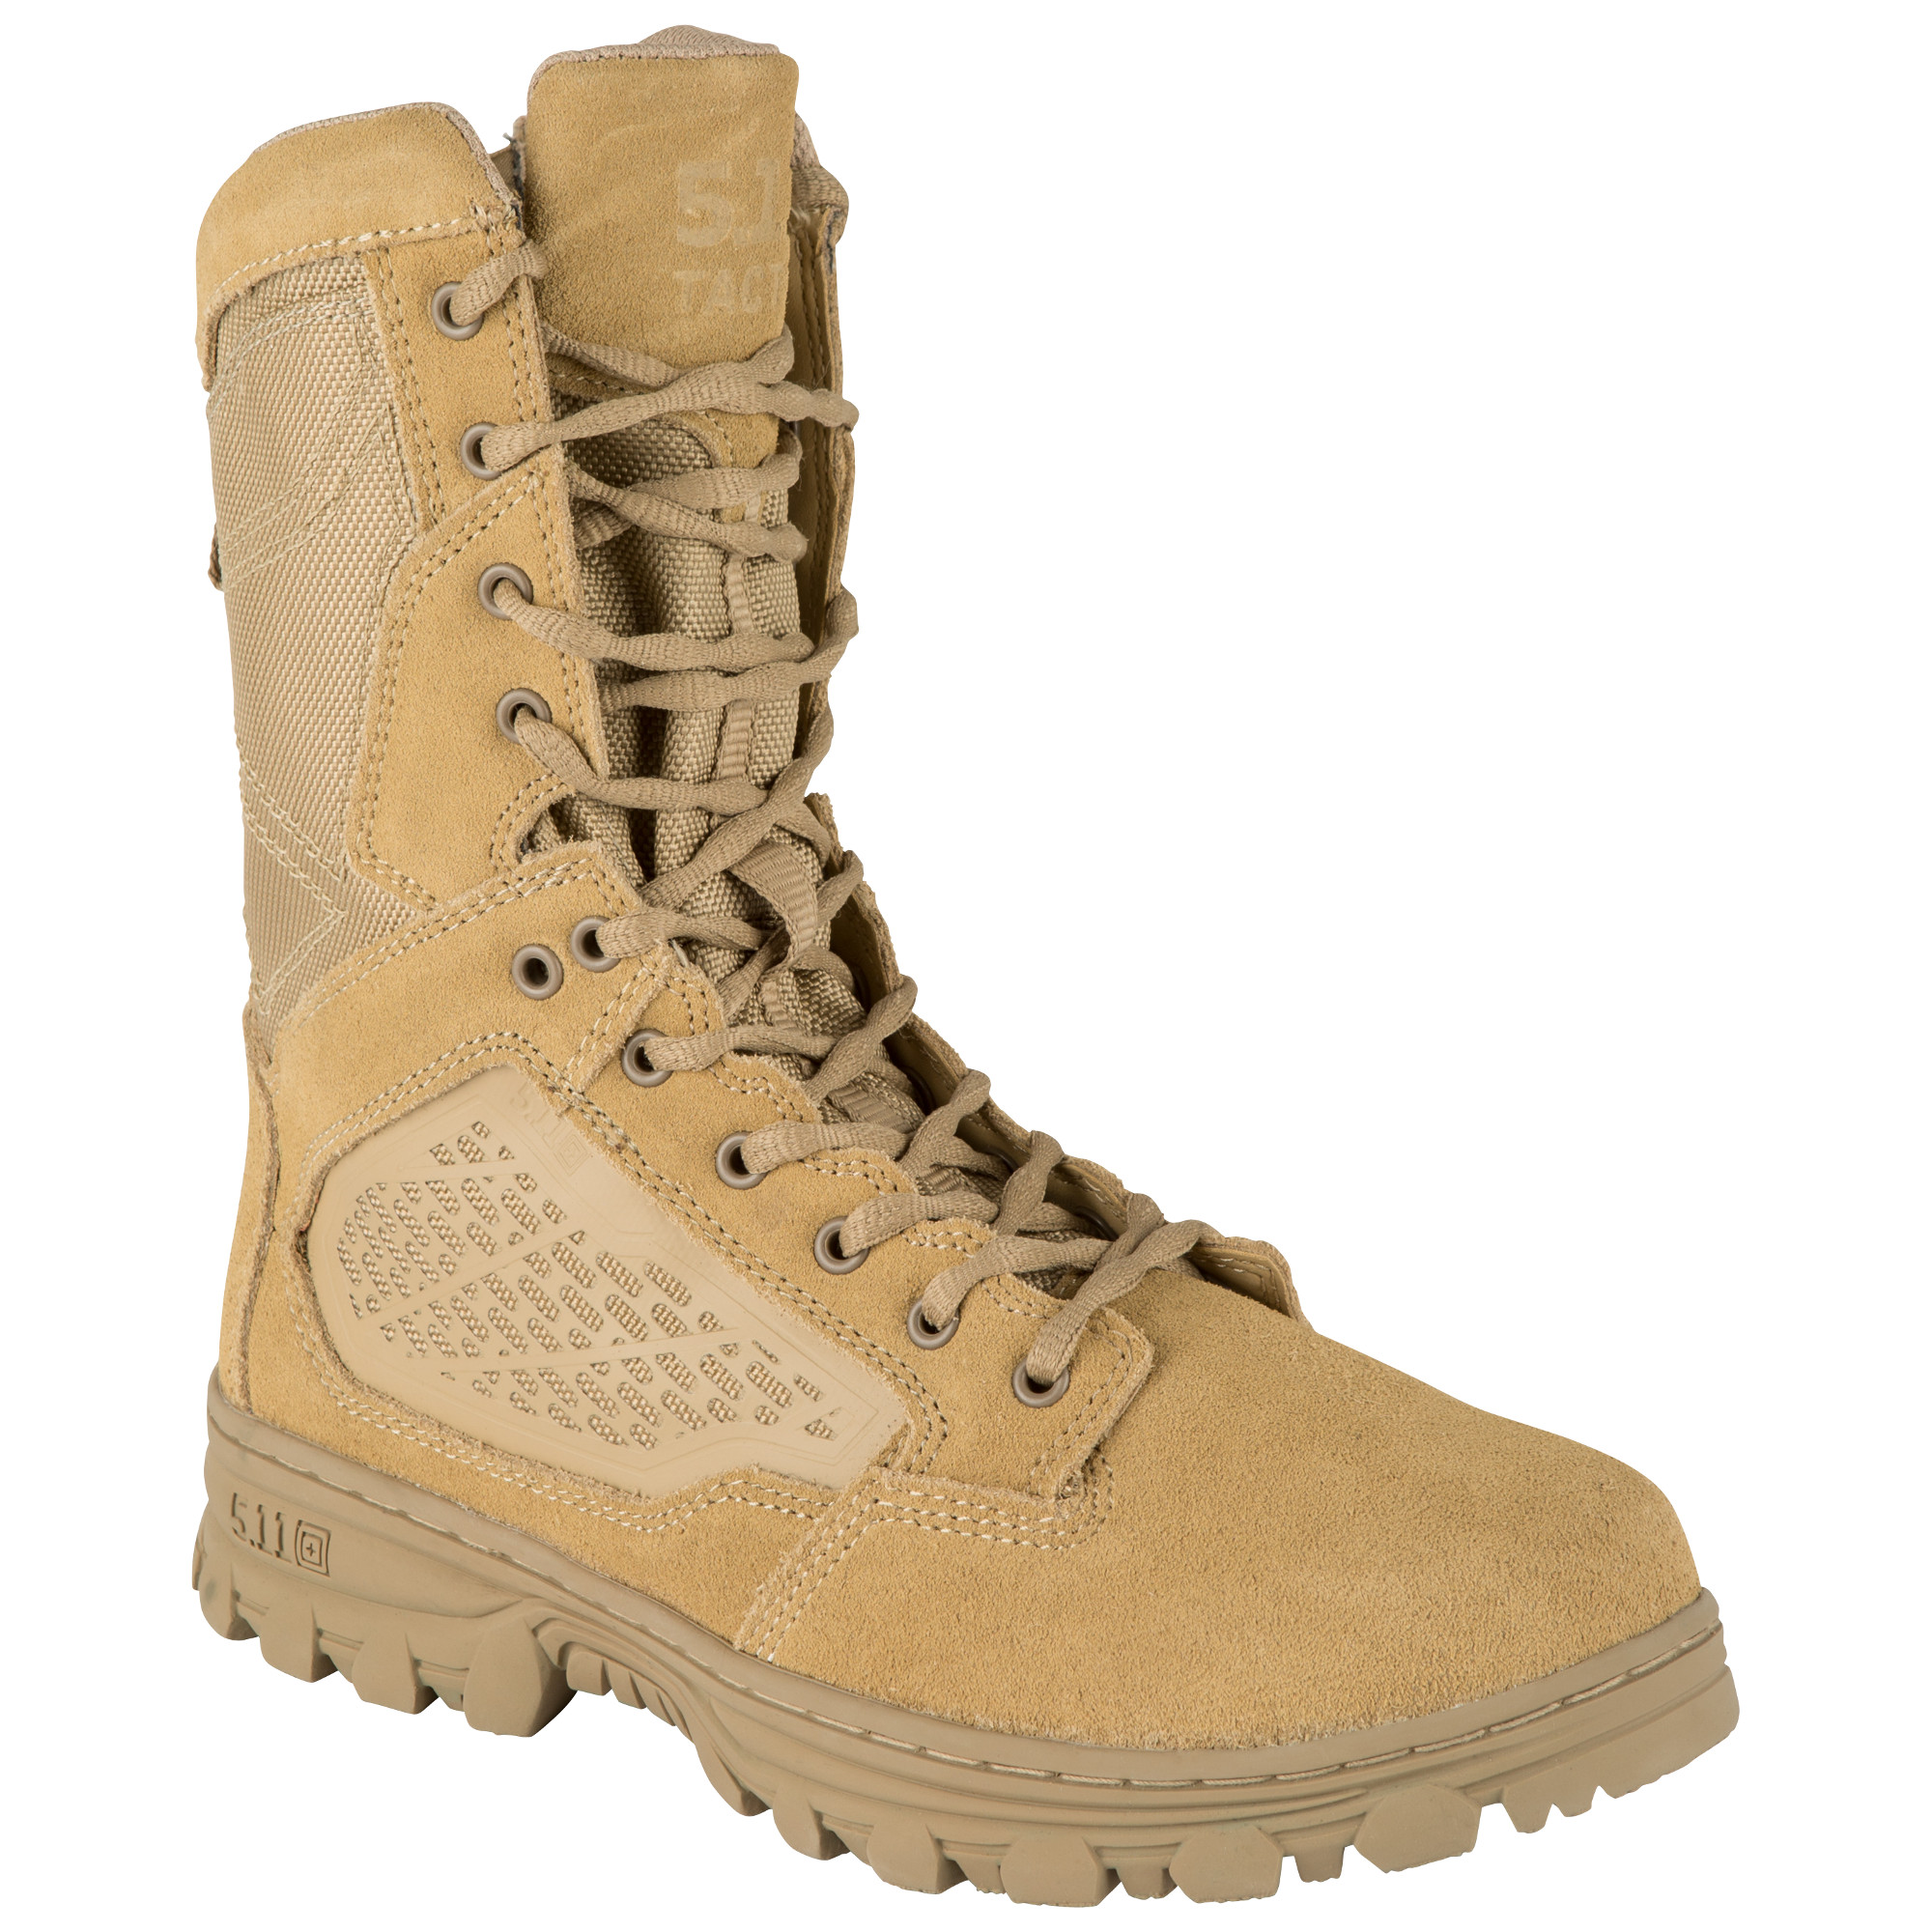 5.11 Tactical Men EVO 8 Desert Side Zip Boot (Khaki/Tan) thumbnail